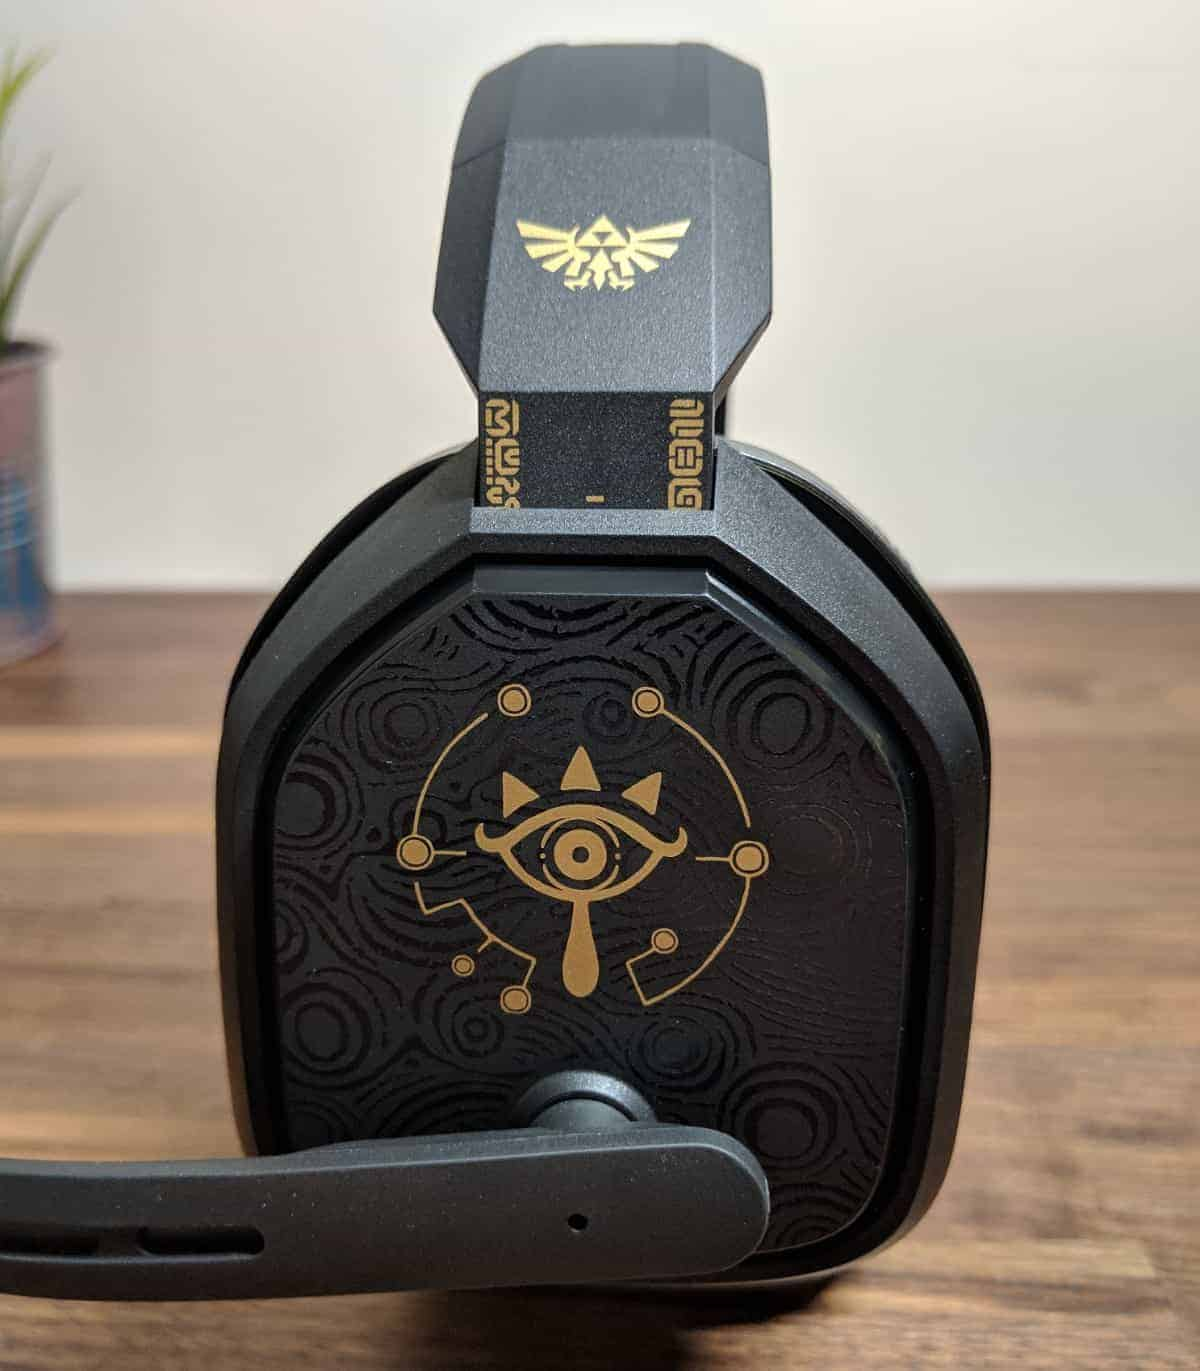 Astro A10 Zelda Breath of the Wild Review - The Streaming Blog